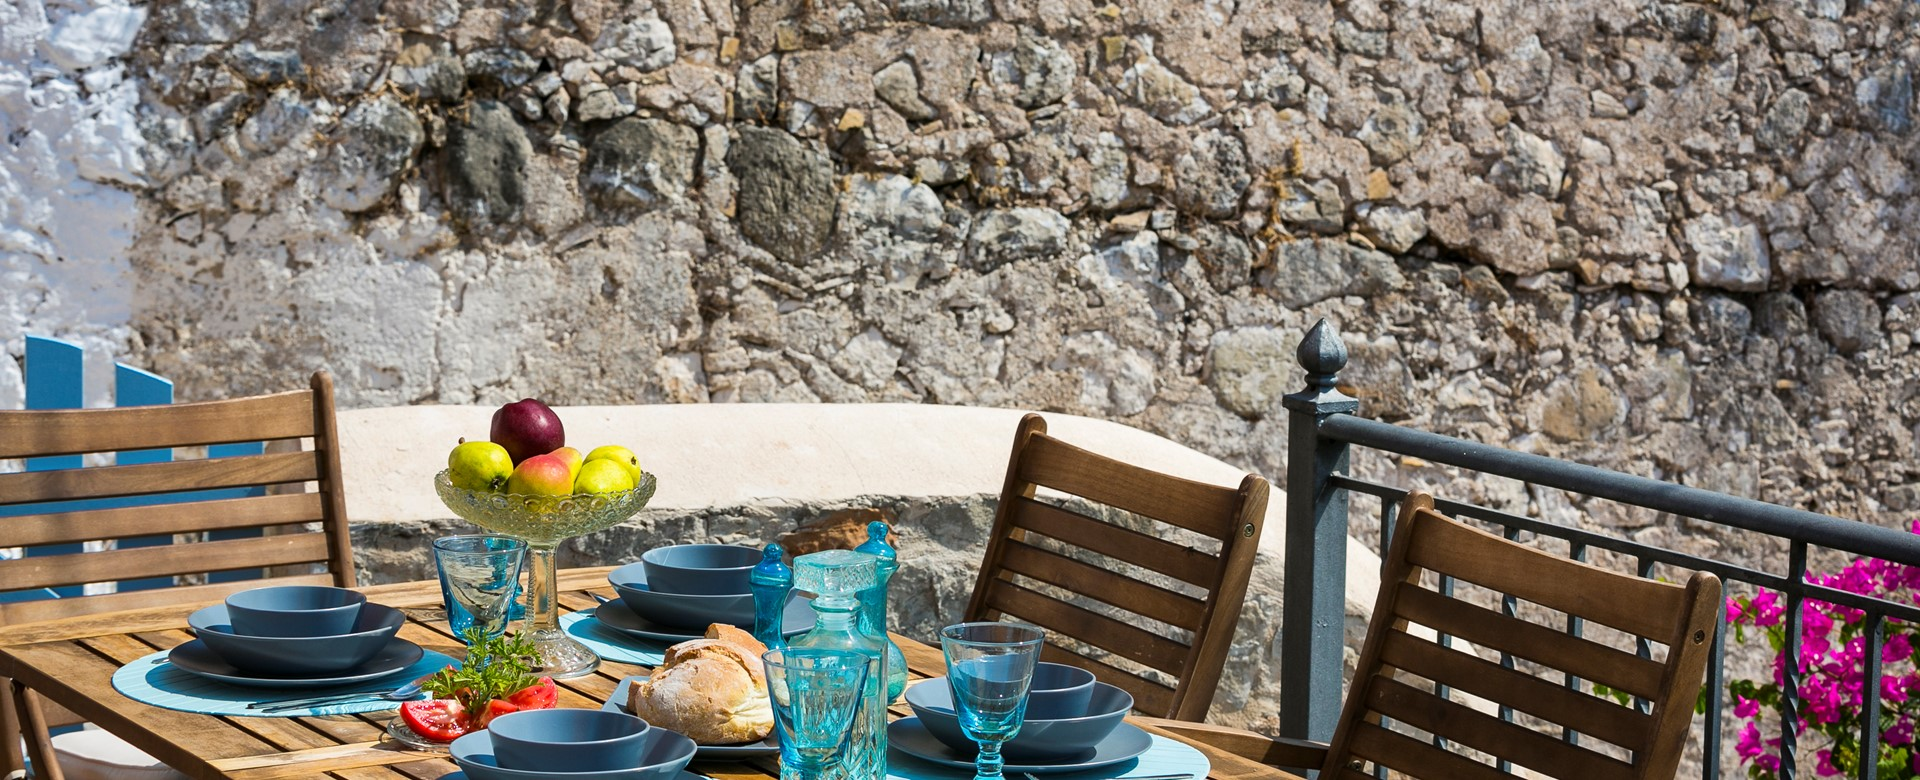 Al fresco dining in the outside spaces of Thalassa House, Assos, Kefalonia, Greek Islands